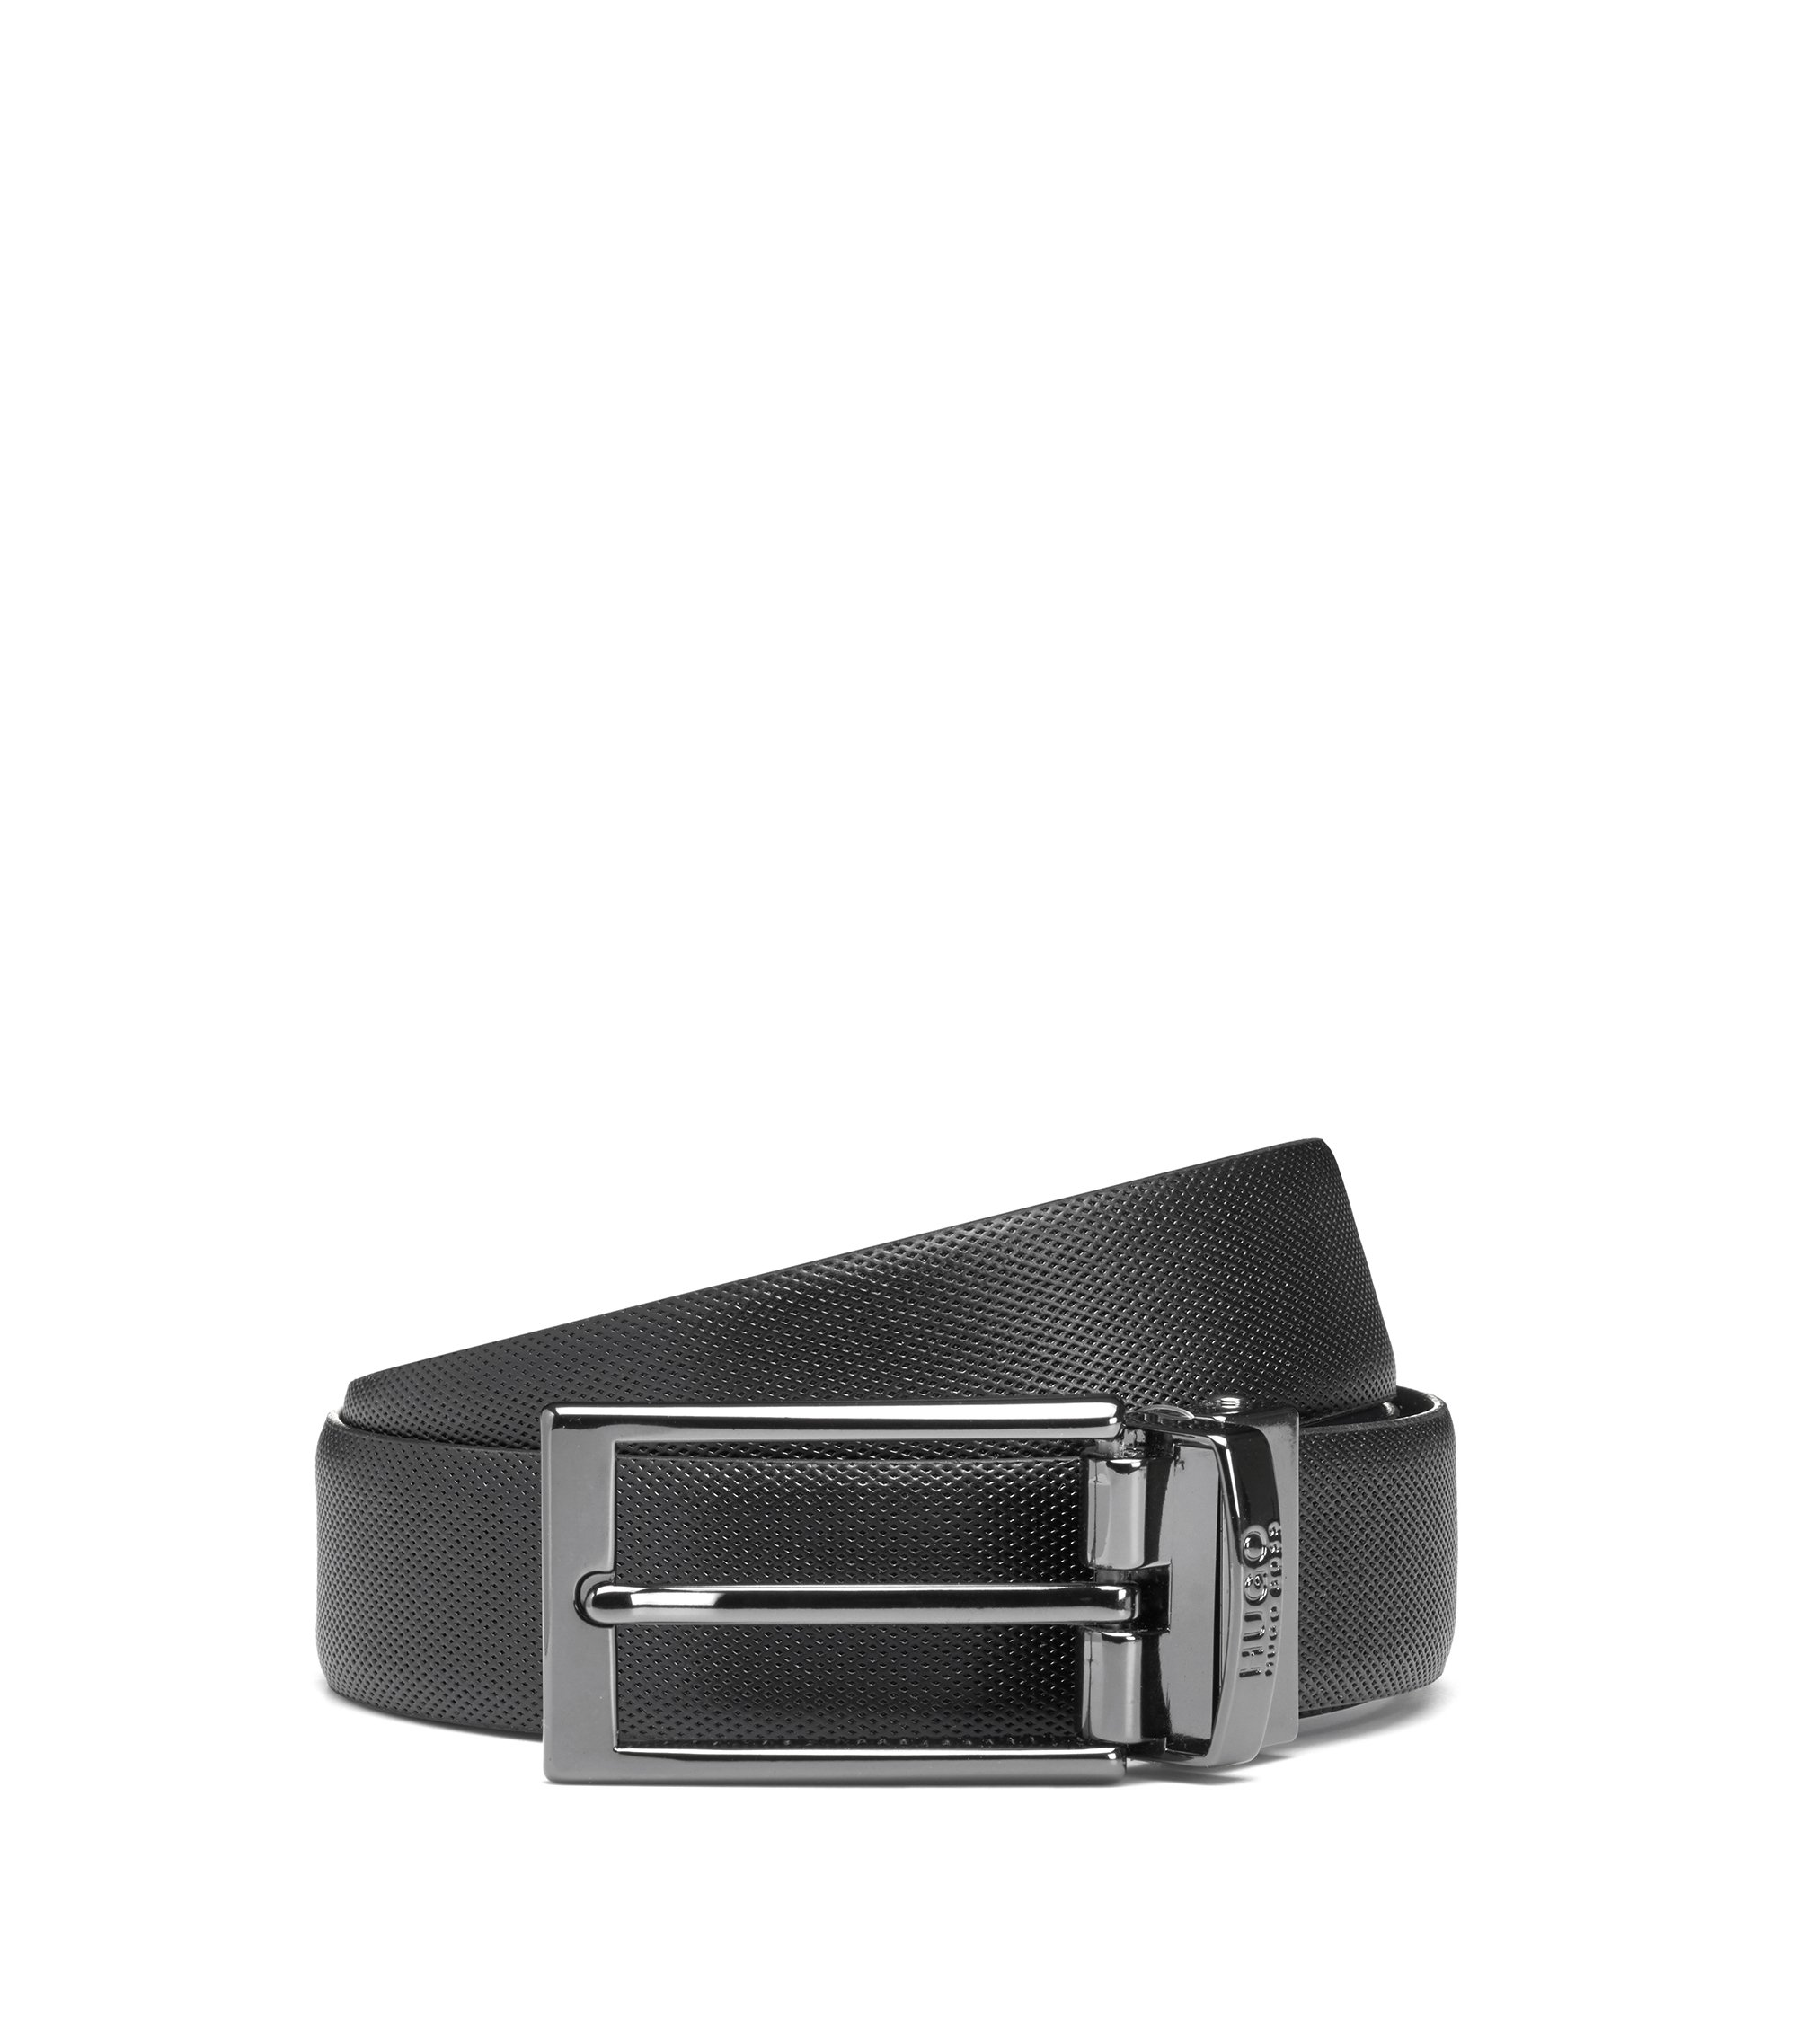 Reversible leather belt with a slimline buckle, Noir